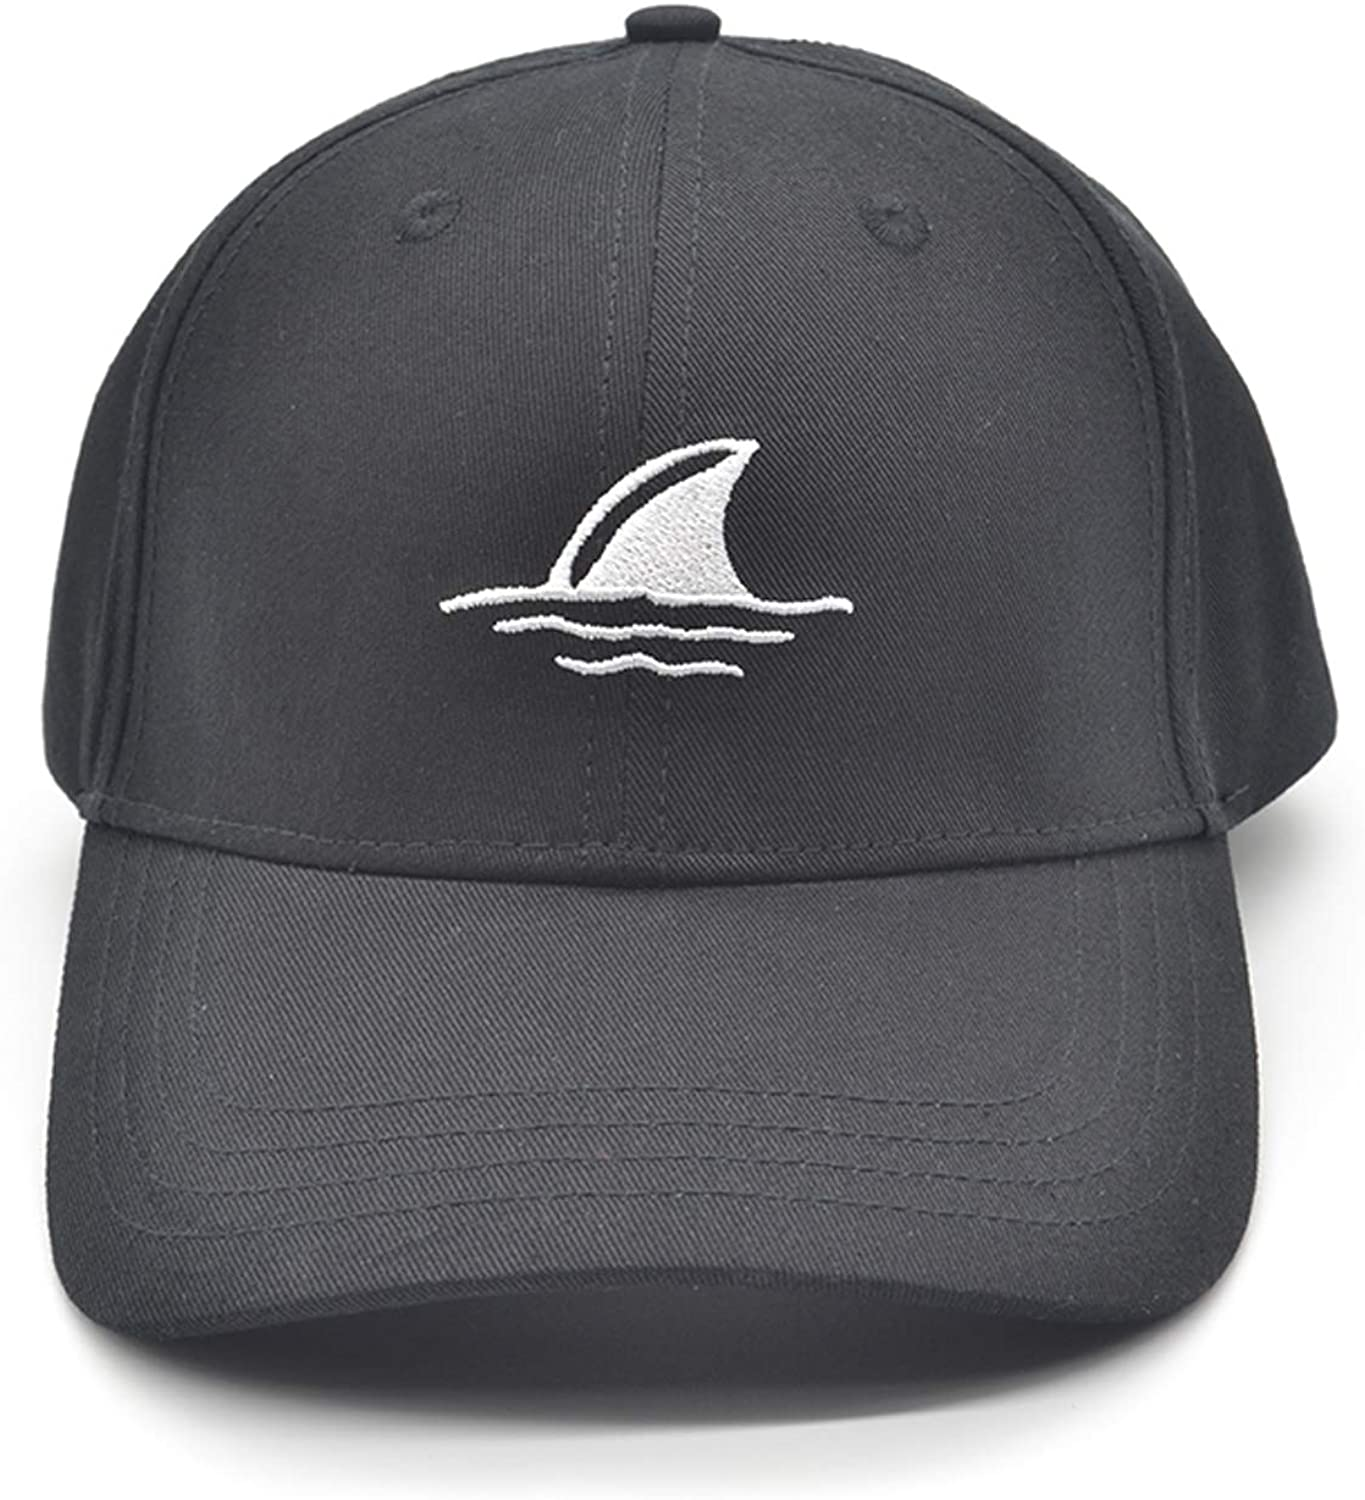 Embroidered Shark Fin Fish Chirstmas Reindeer Snowman USA Baseball Cap Trucker Army Cool Hunting Dad Hat Adjustable